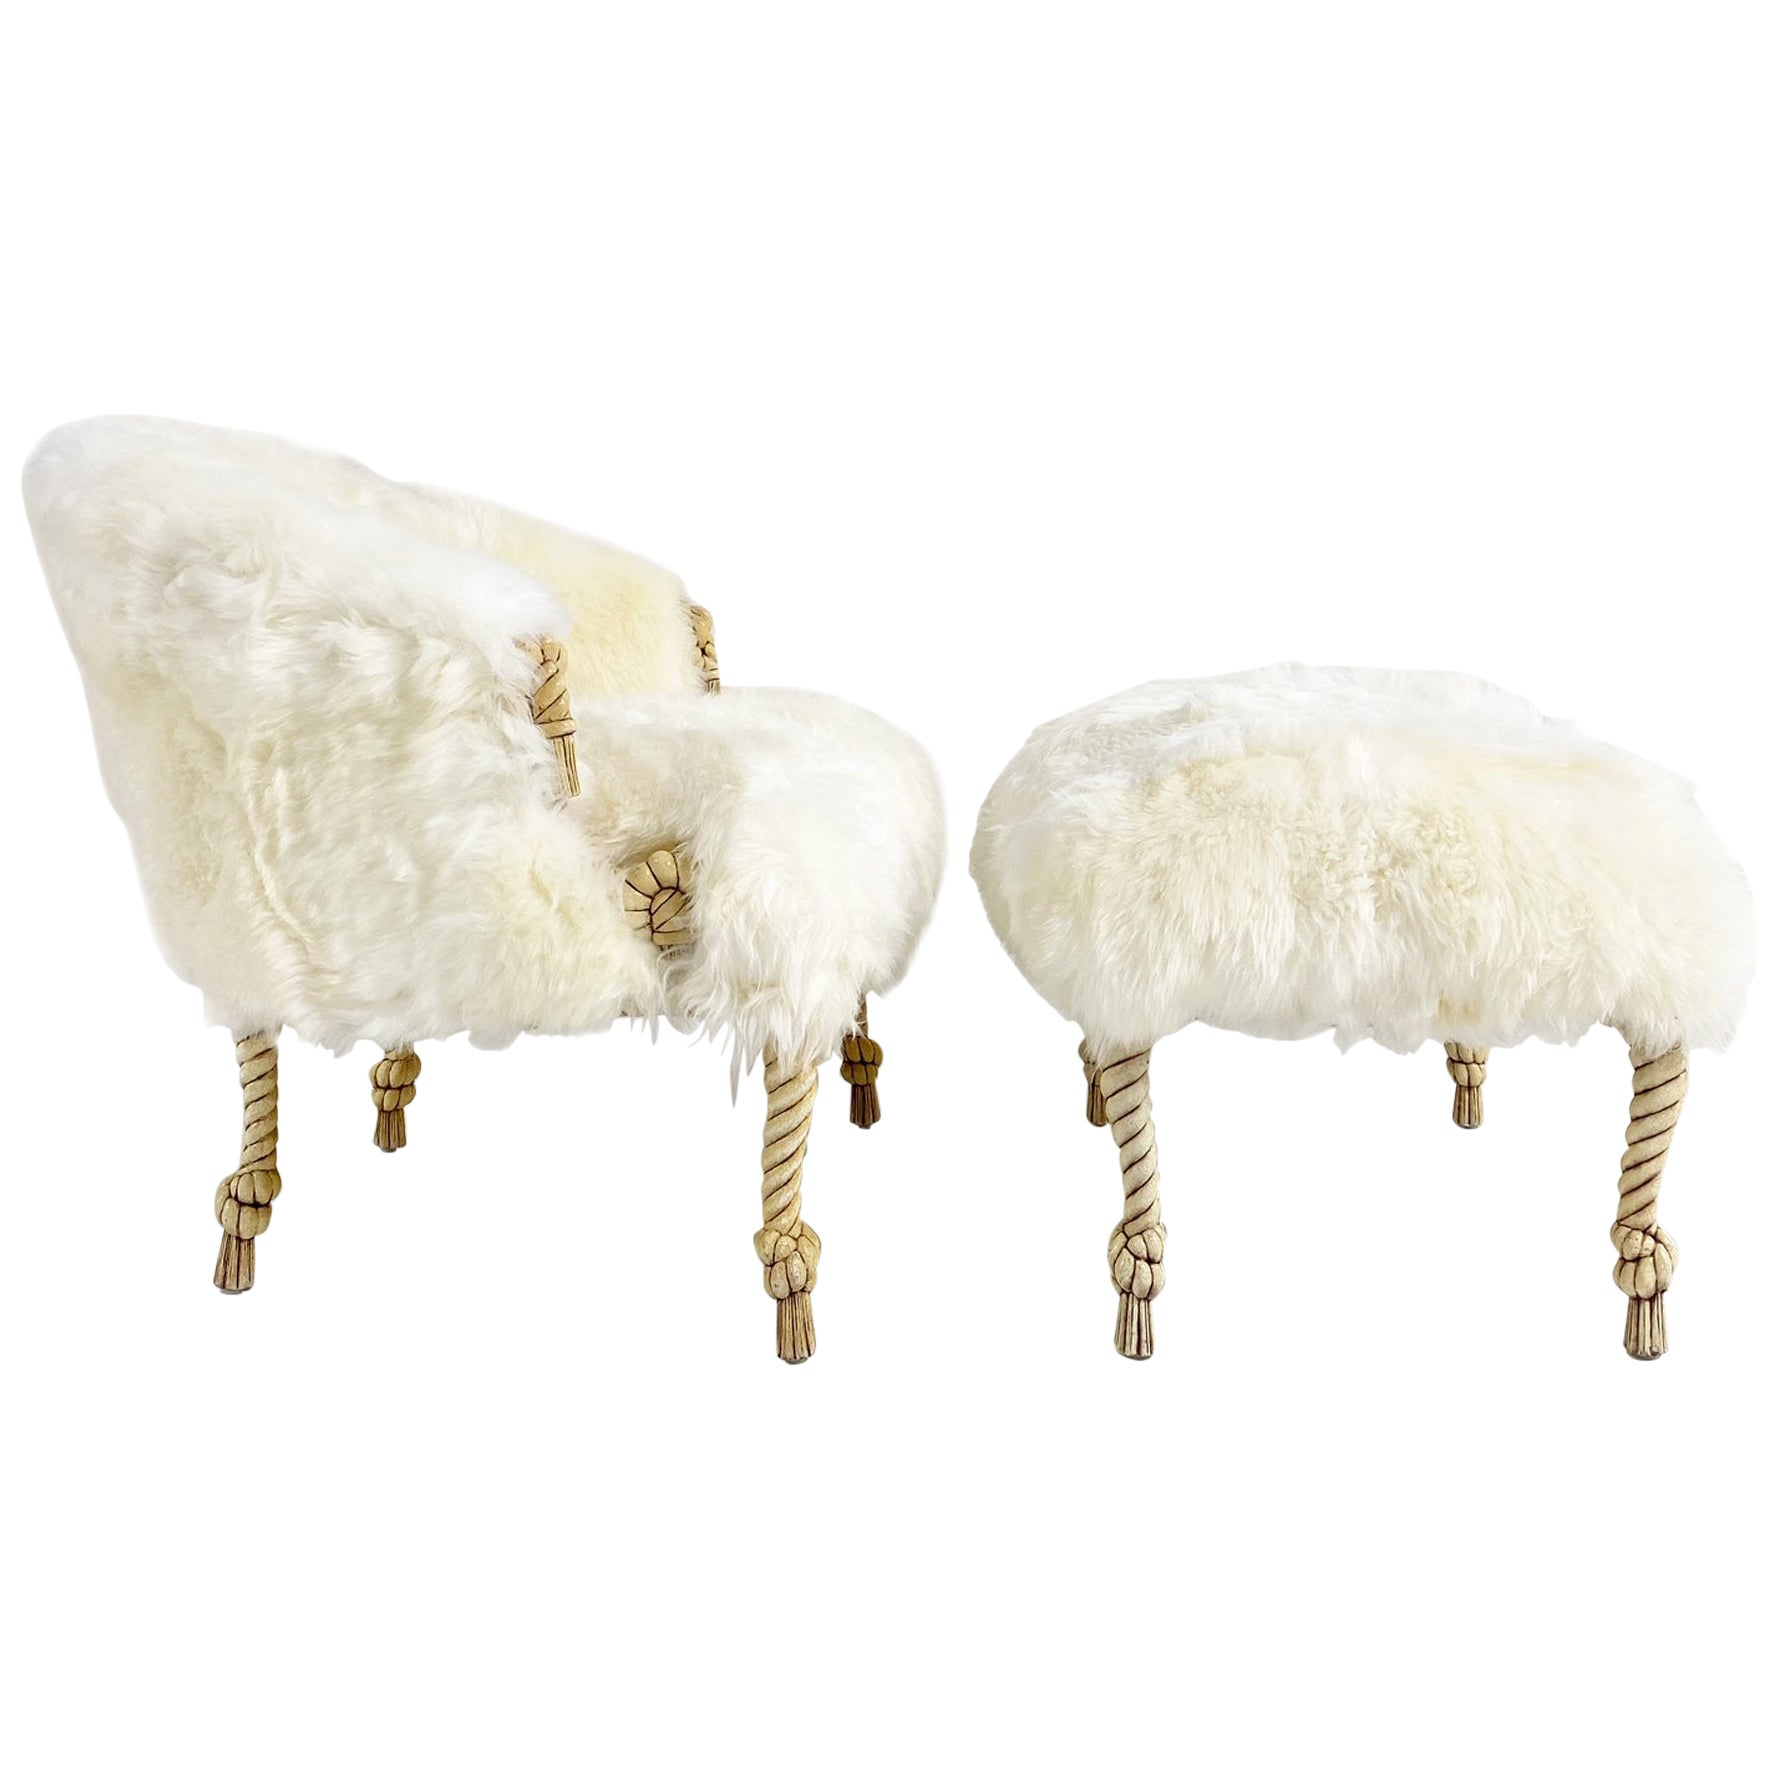 Napoleon III Style Rope and Tassel Carved Chair and Ottoman in Sheepskin